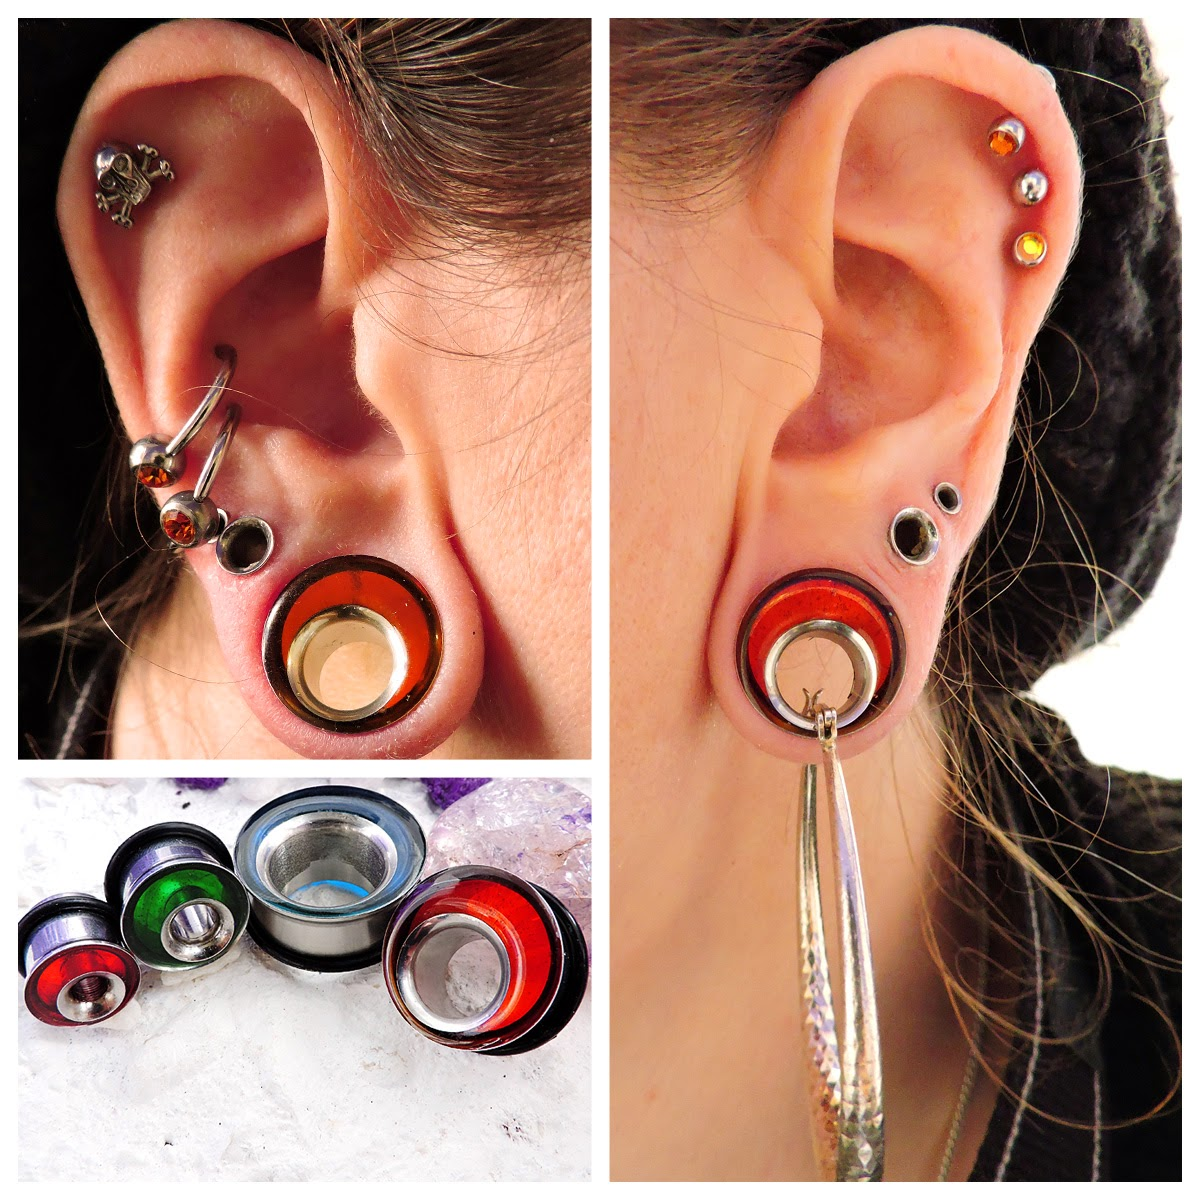 Tunnels Or Eyelets Stretchers Gauges They Re Fab On Their Own With A Nice Pair Of Earrings Clanking Away Through Them And Also Now